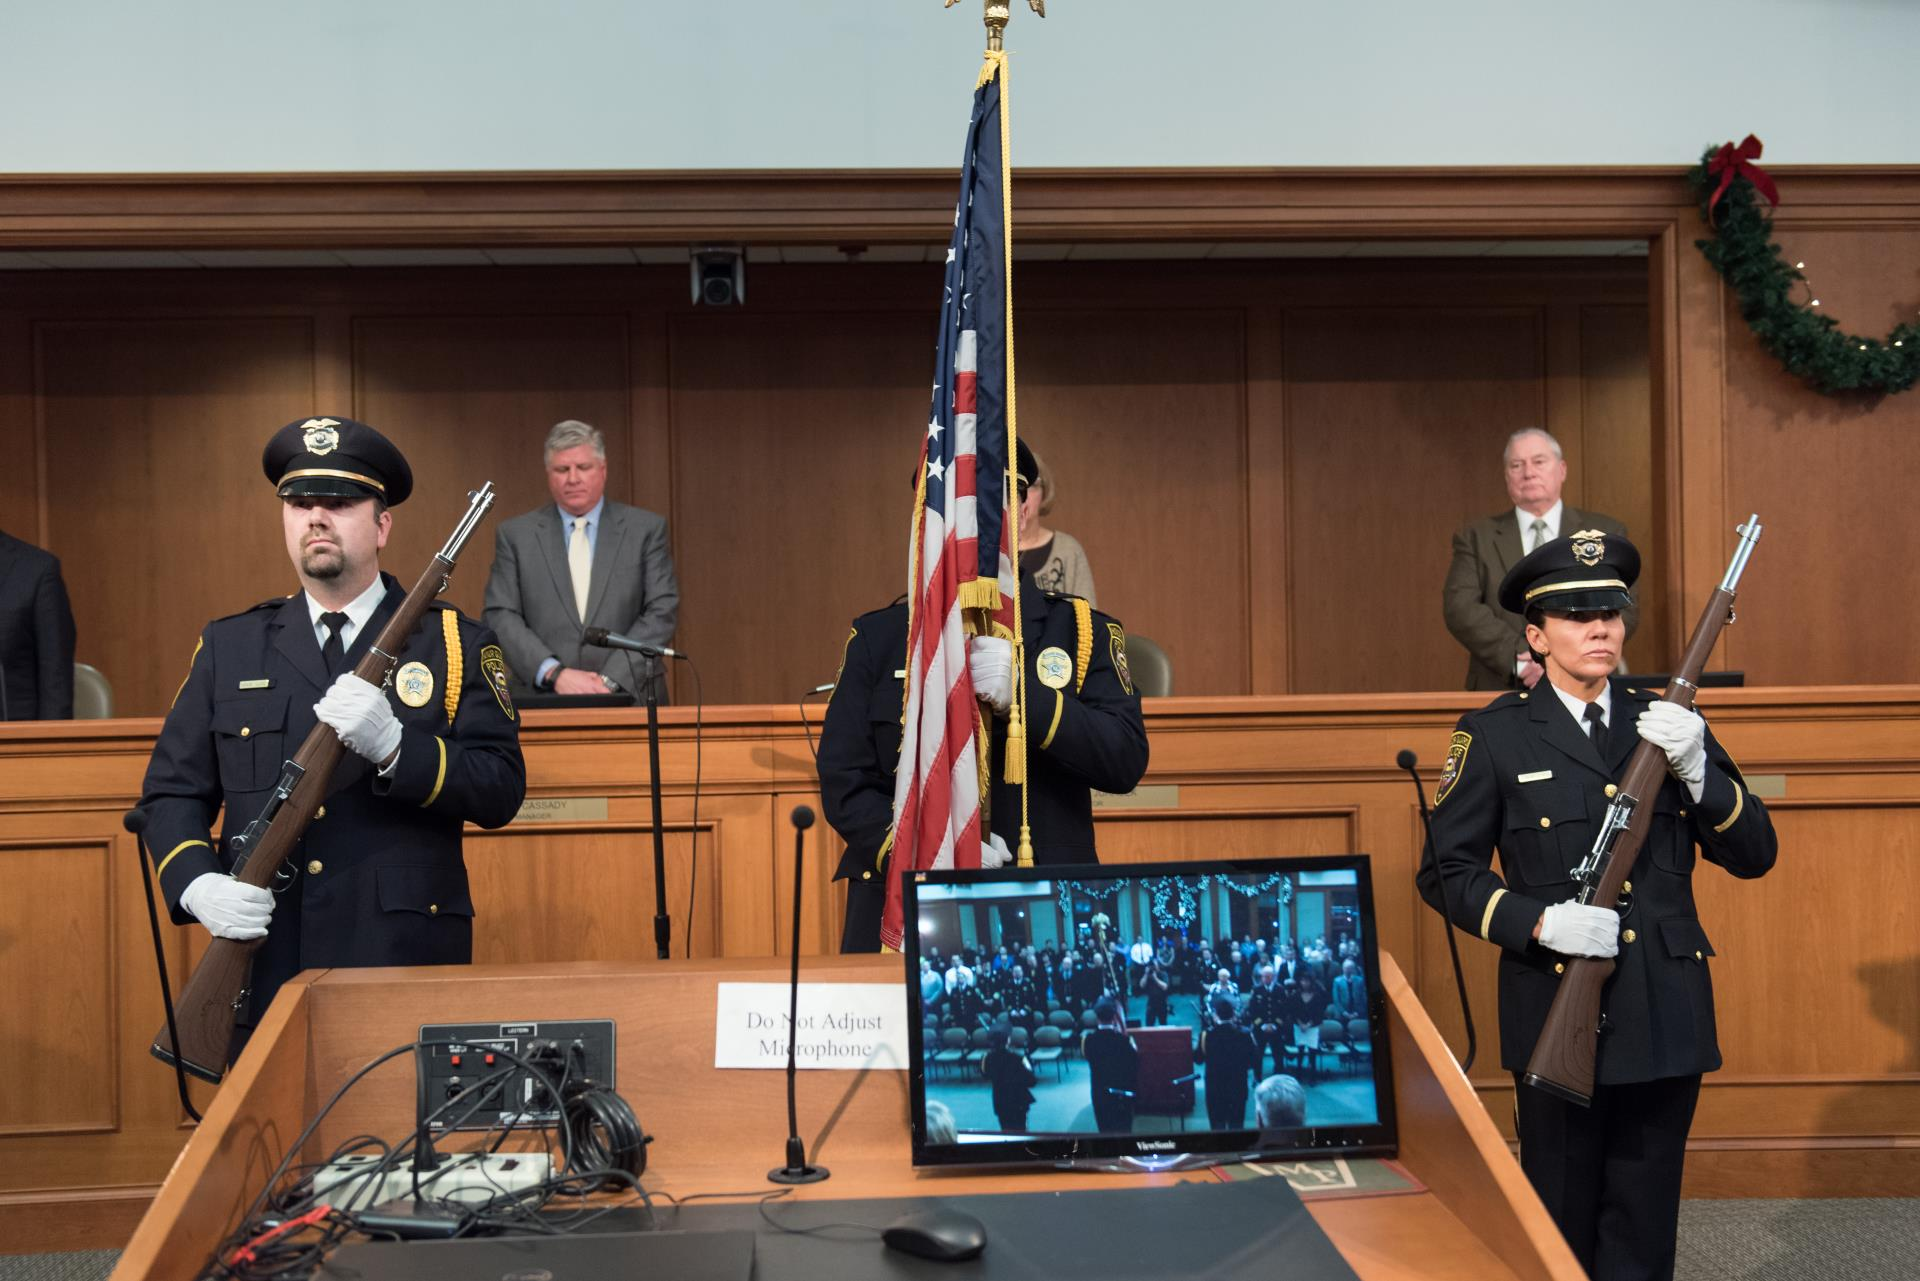 Chief Koziol Swearing-In Ceremony Final-4194